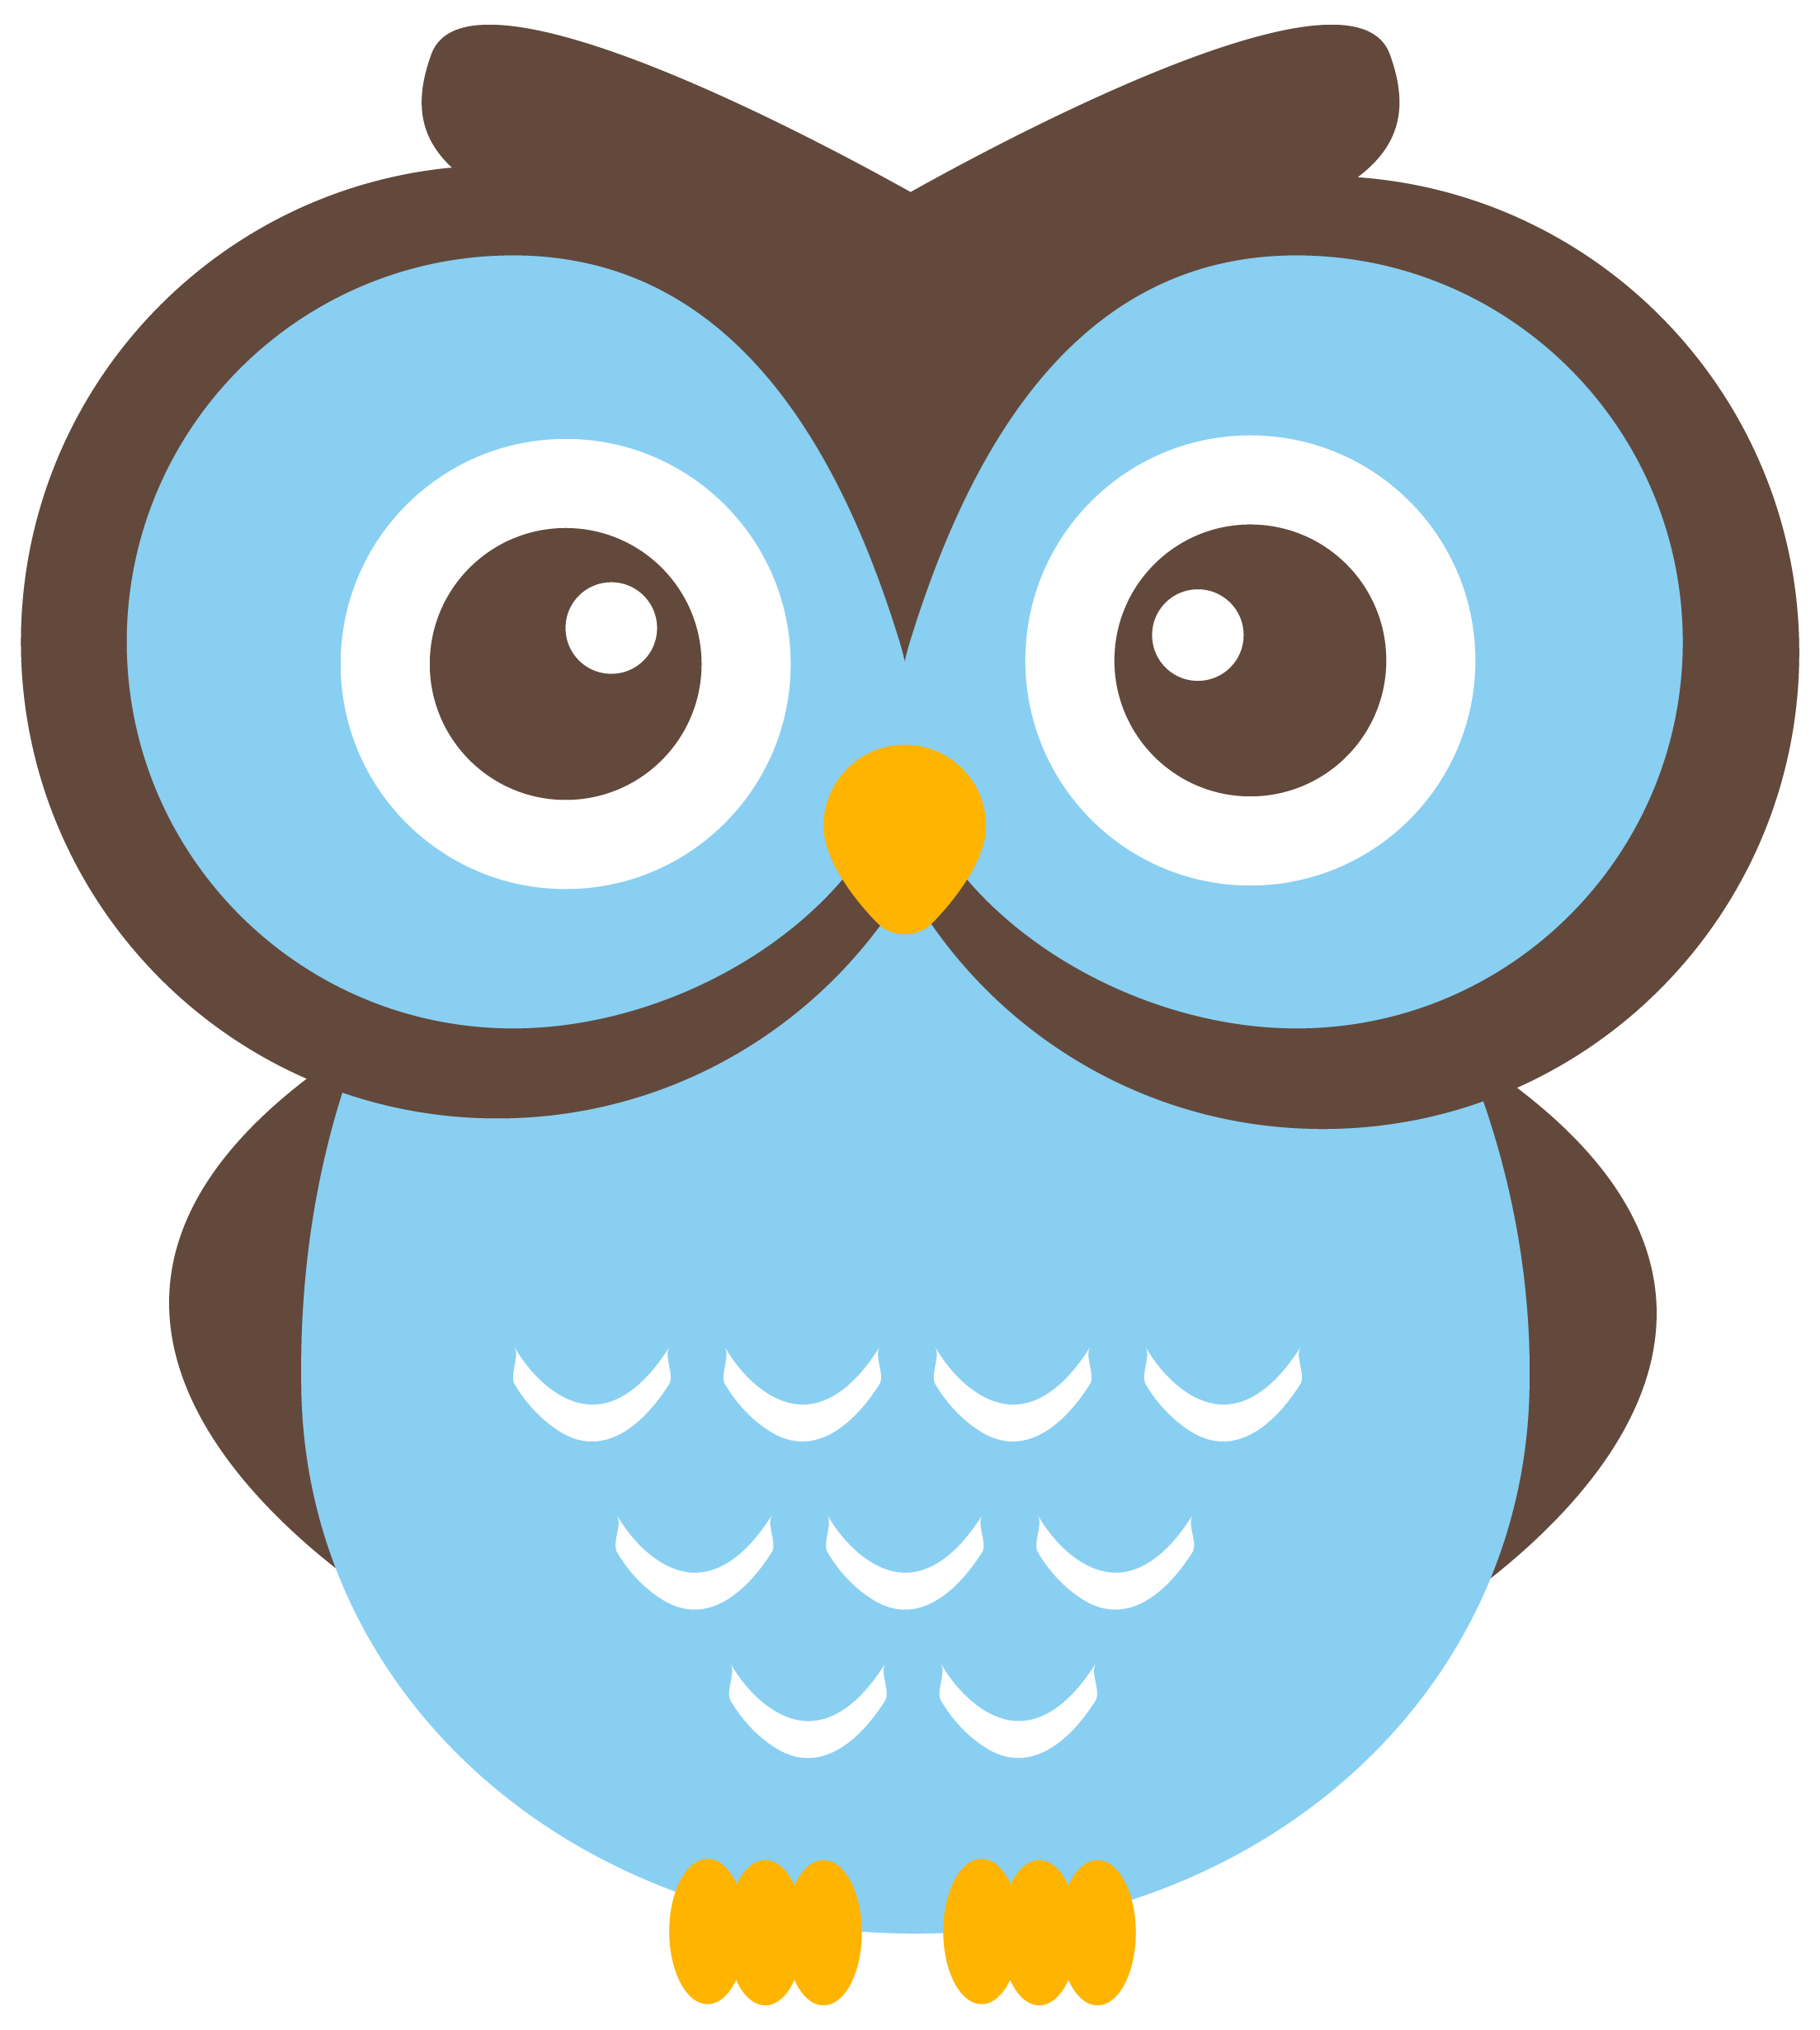 Fathers clipart owl. Free cartoon image clip